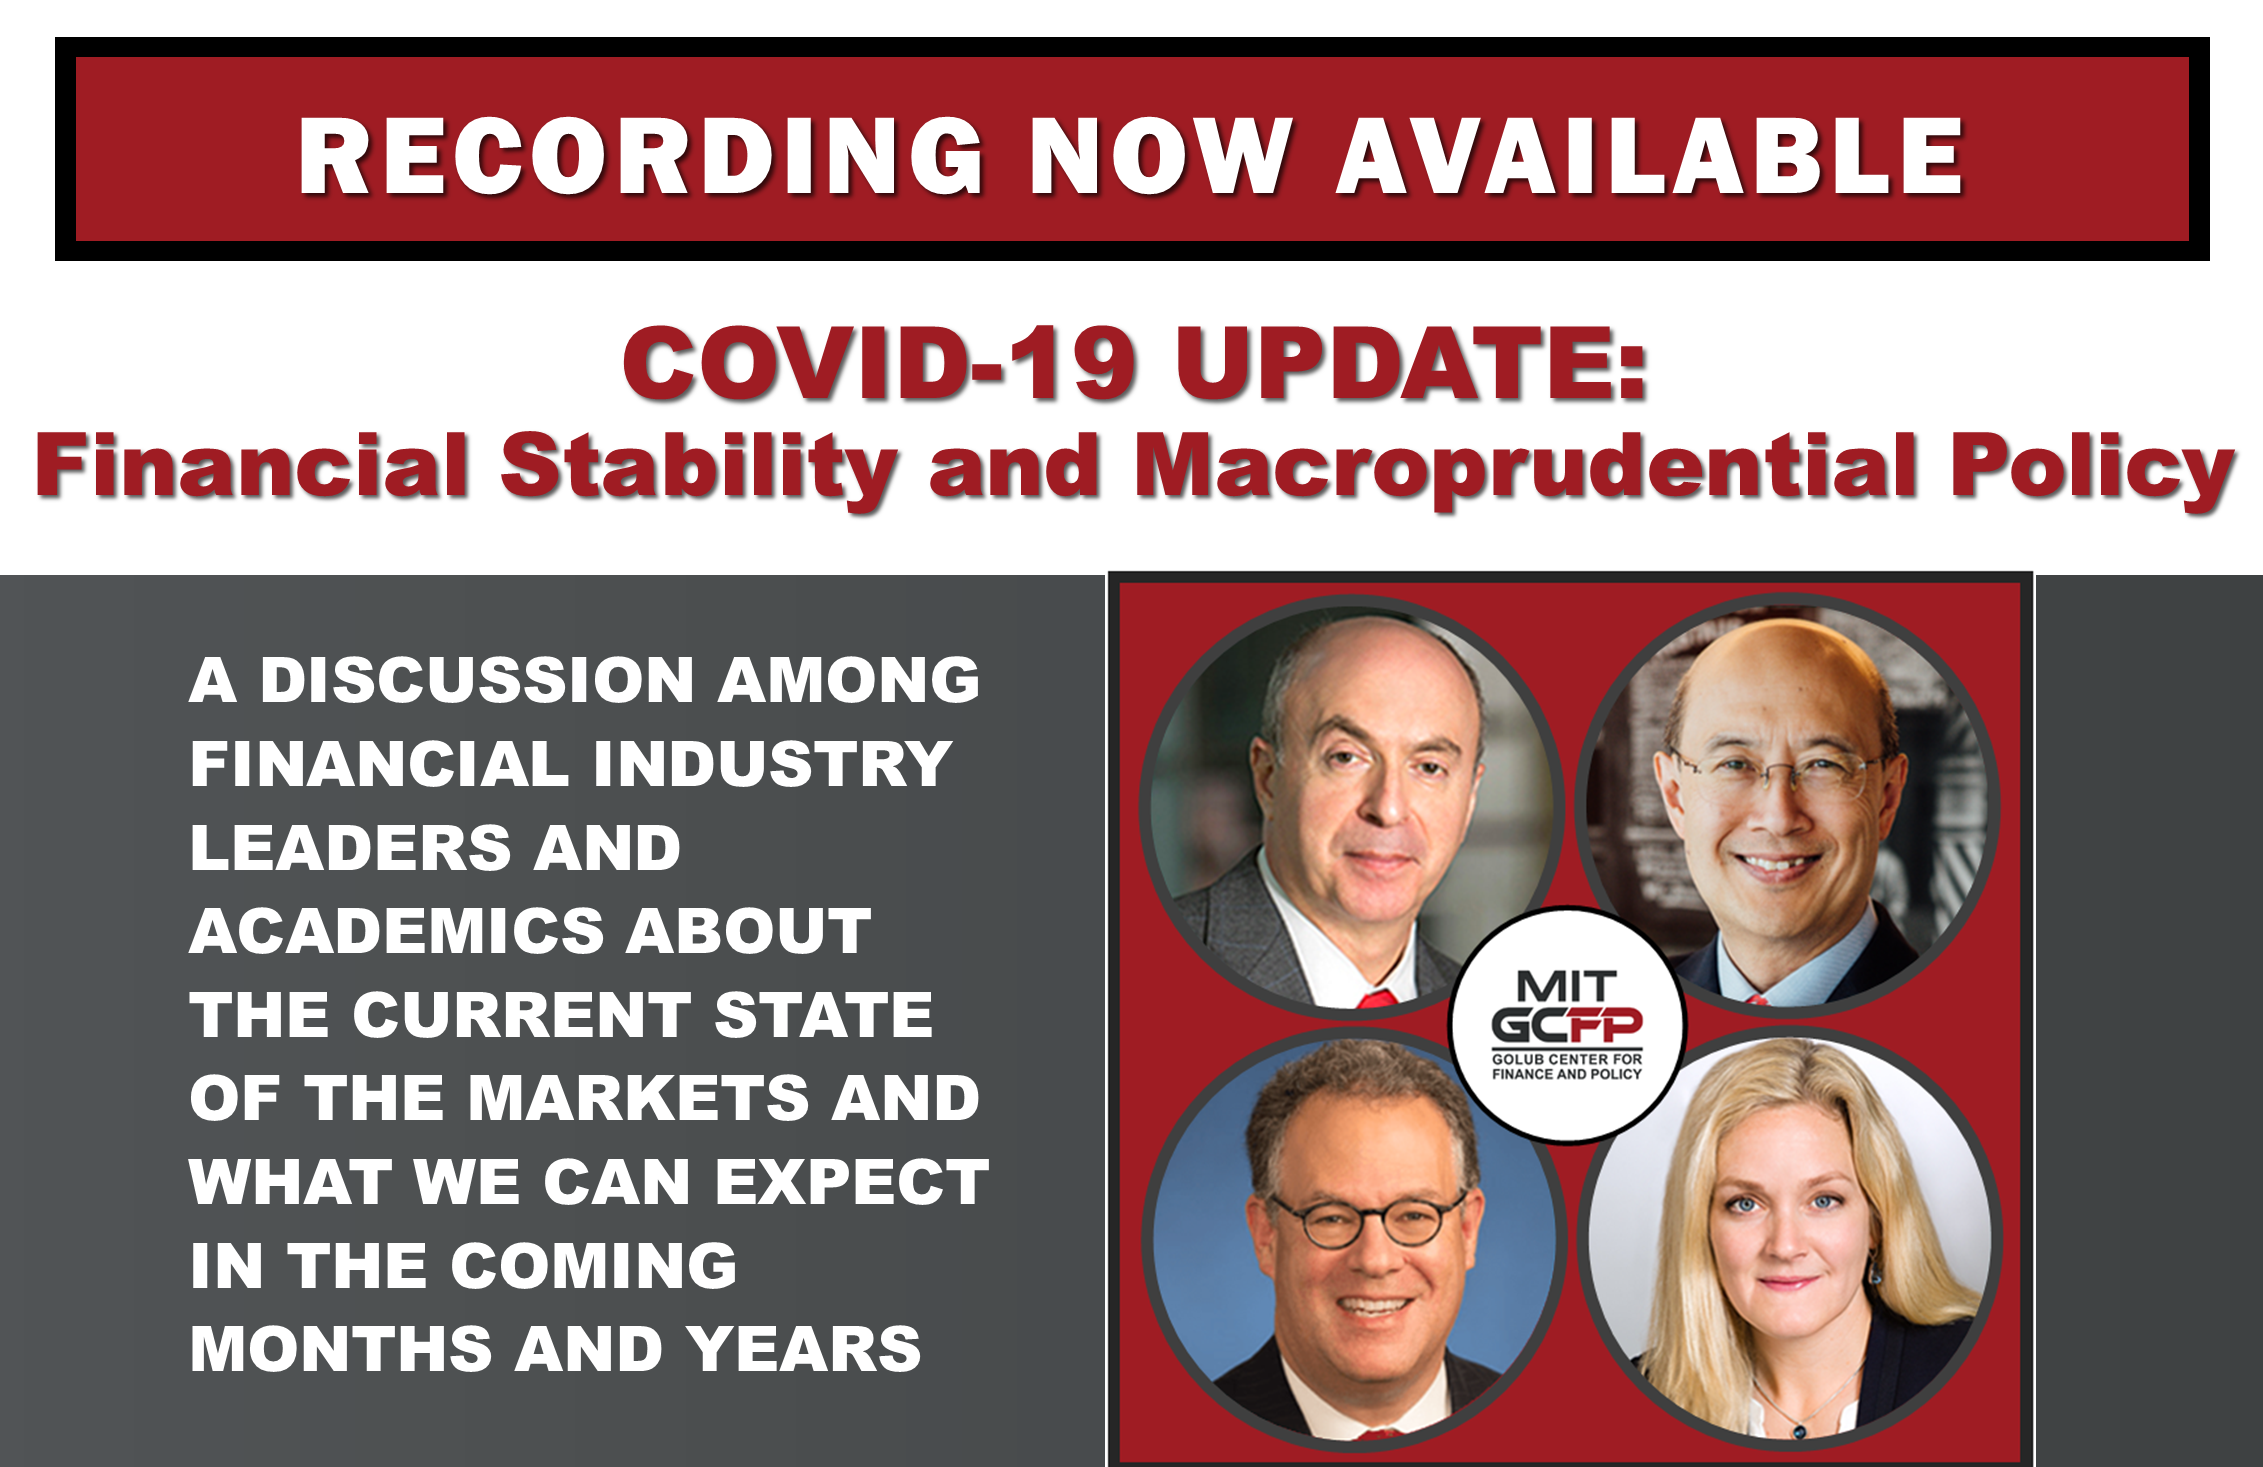 COVID-19 UPDATE: Financial Stability and Macroprudential Policy